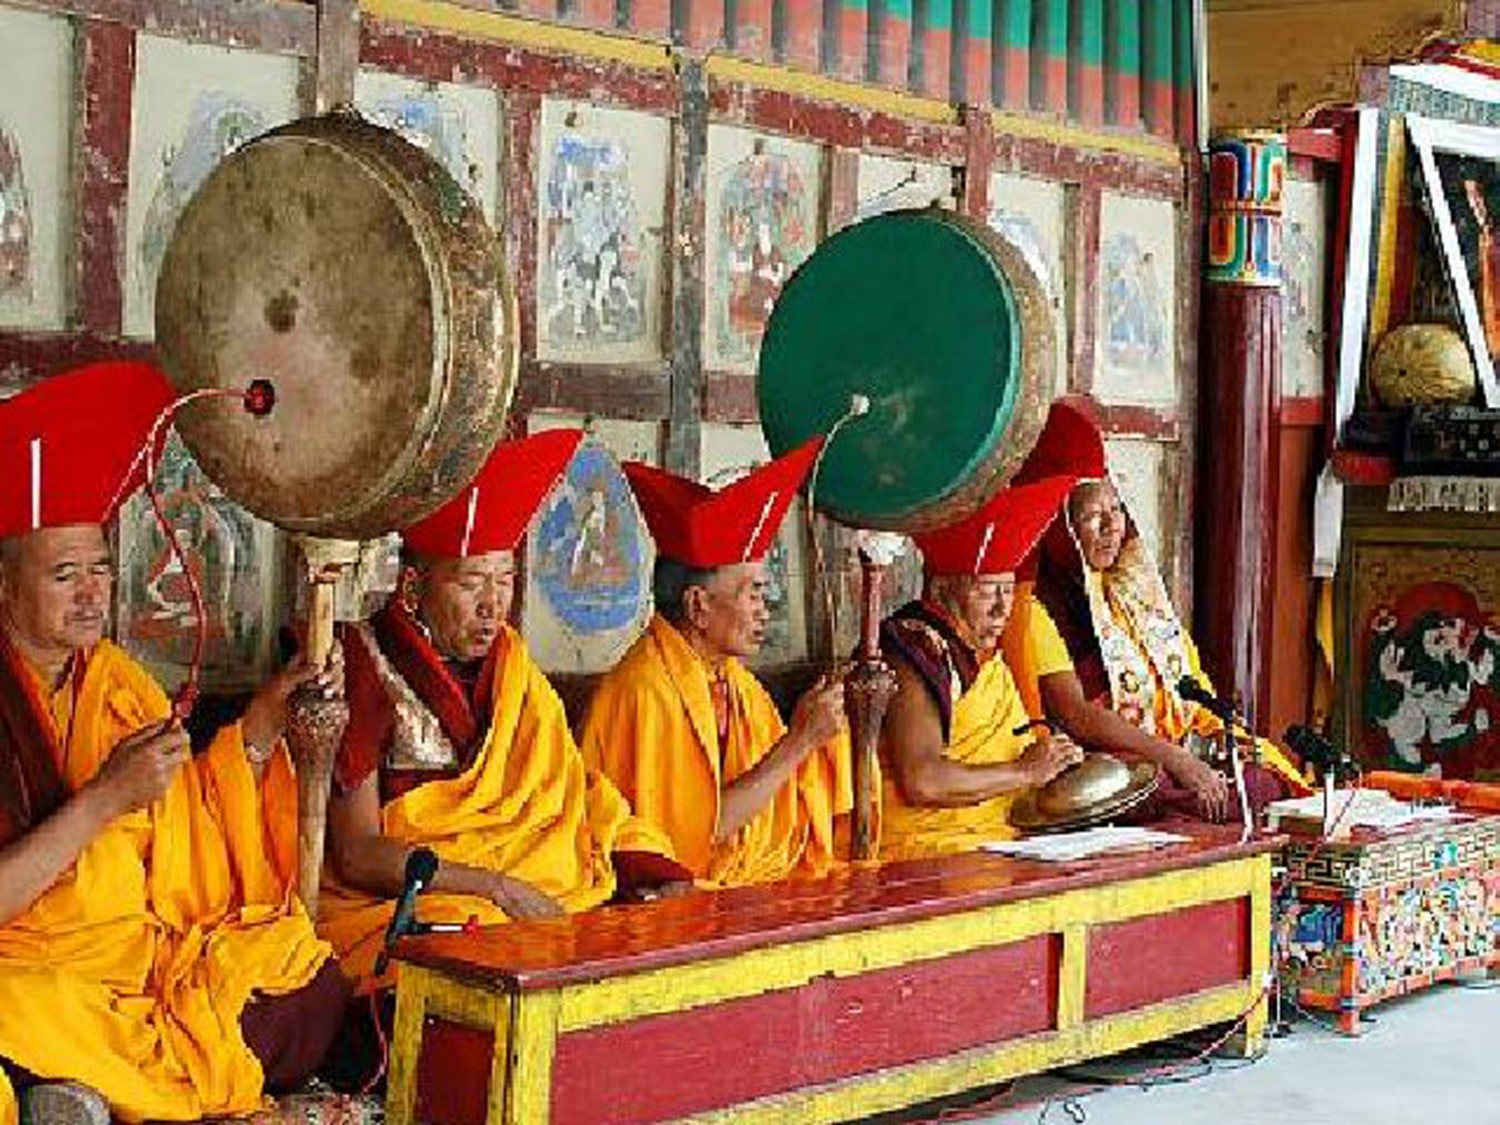 the culture beliefs and traditions of buddhist monks In buddhist traditions, this death bed chanting is regarded as very important and is ideally the last thing the buddhist hears buddhists believe that we can actively assist and bring relief to the dying members through assisting the dying through the process of dying.